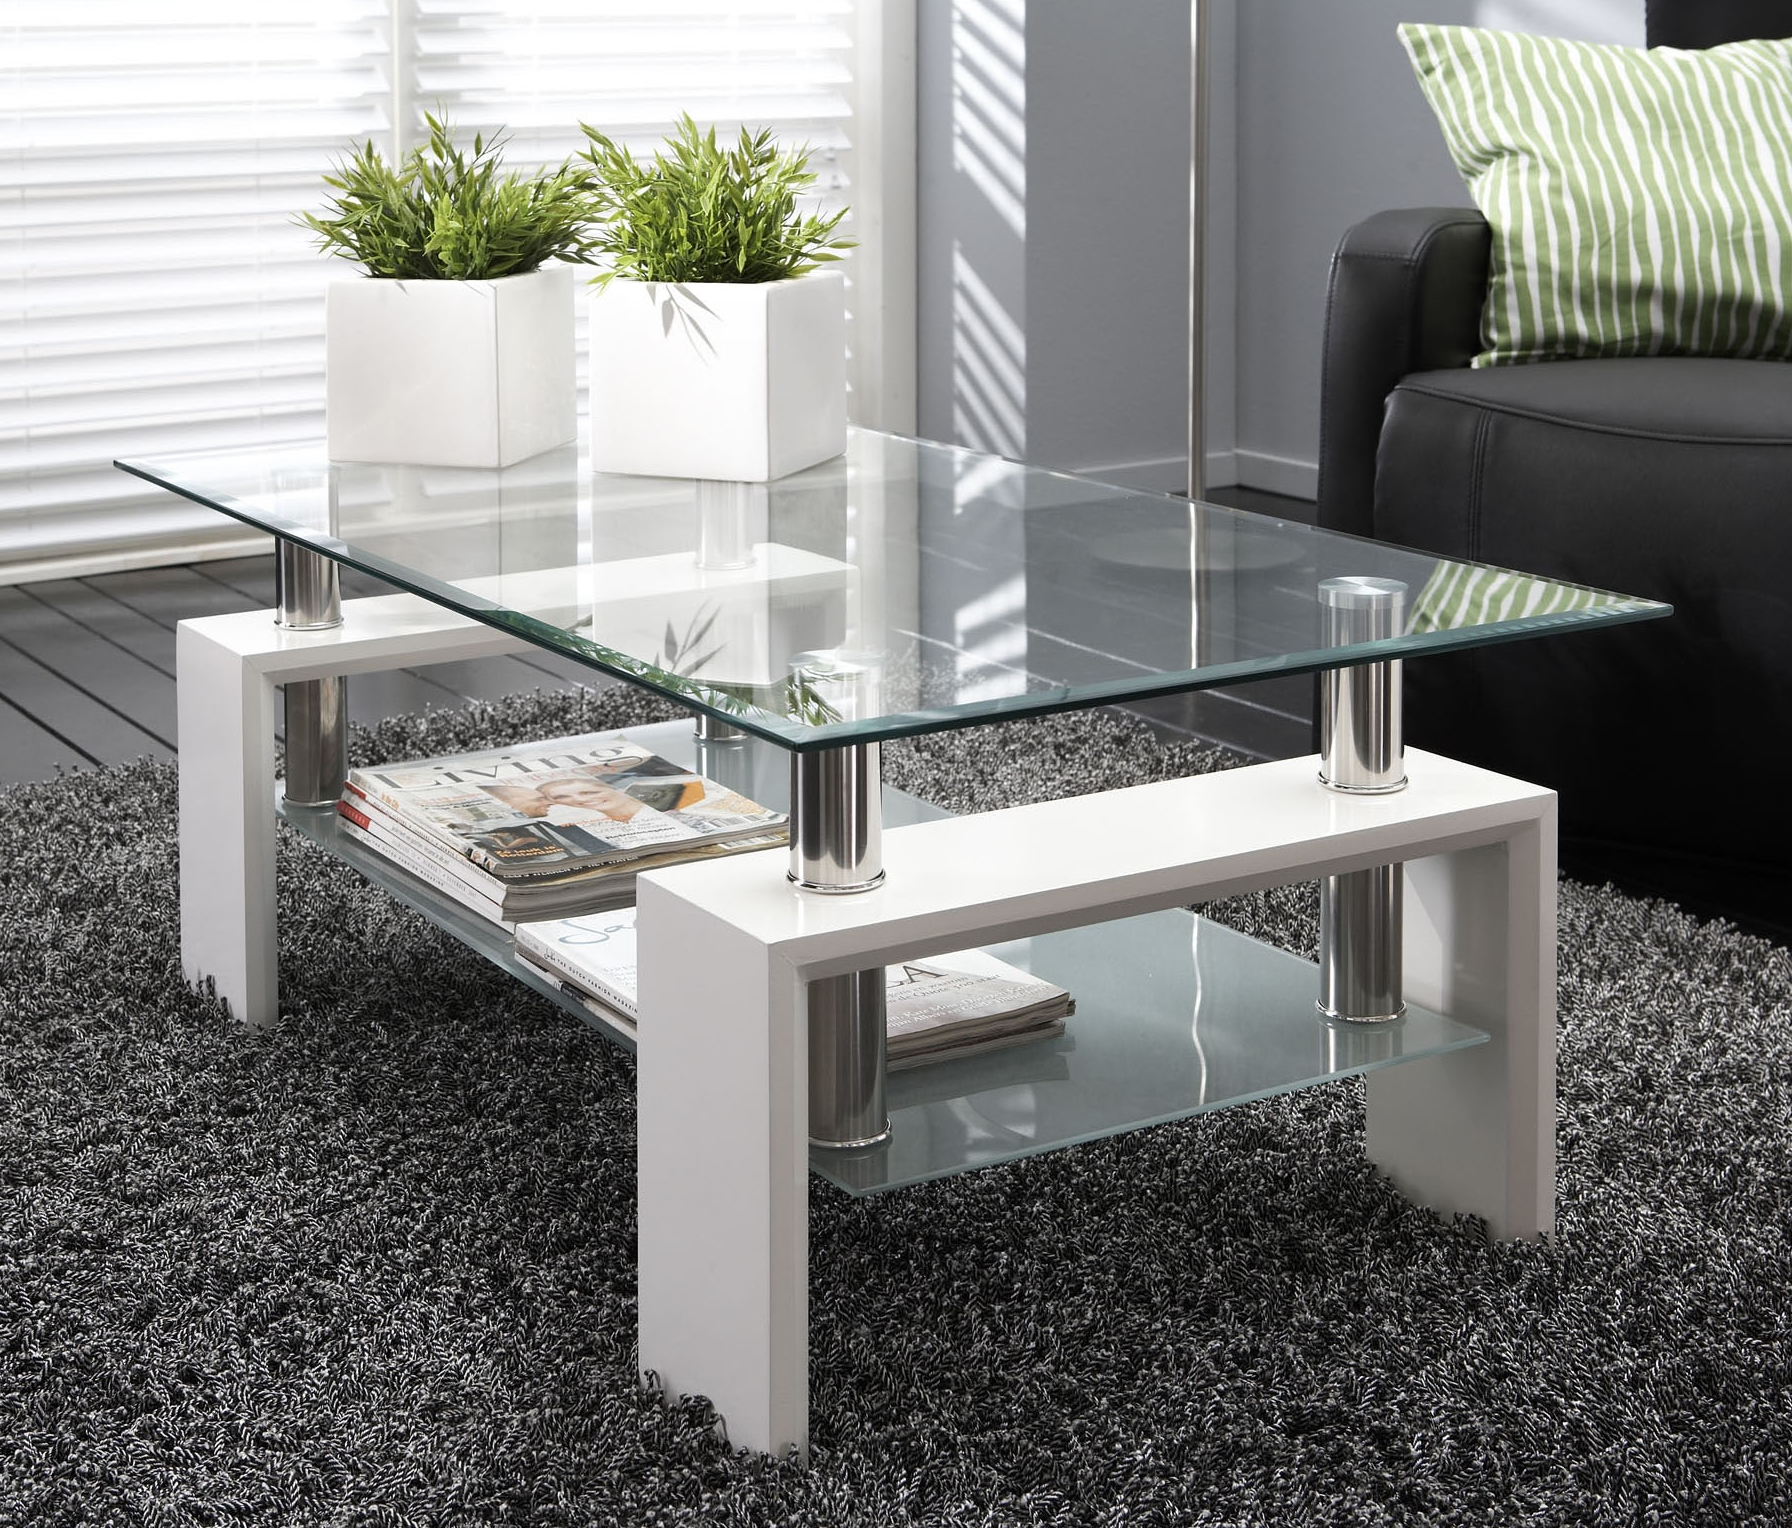 Table basse en verre ma table basse - Table basse salon verre ...